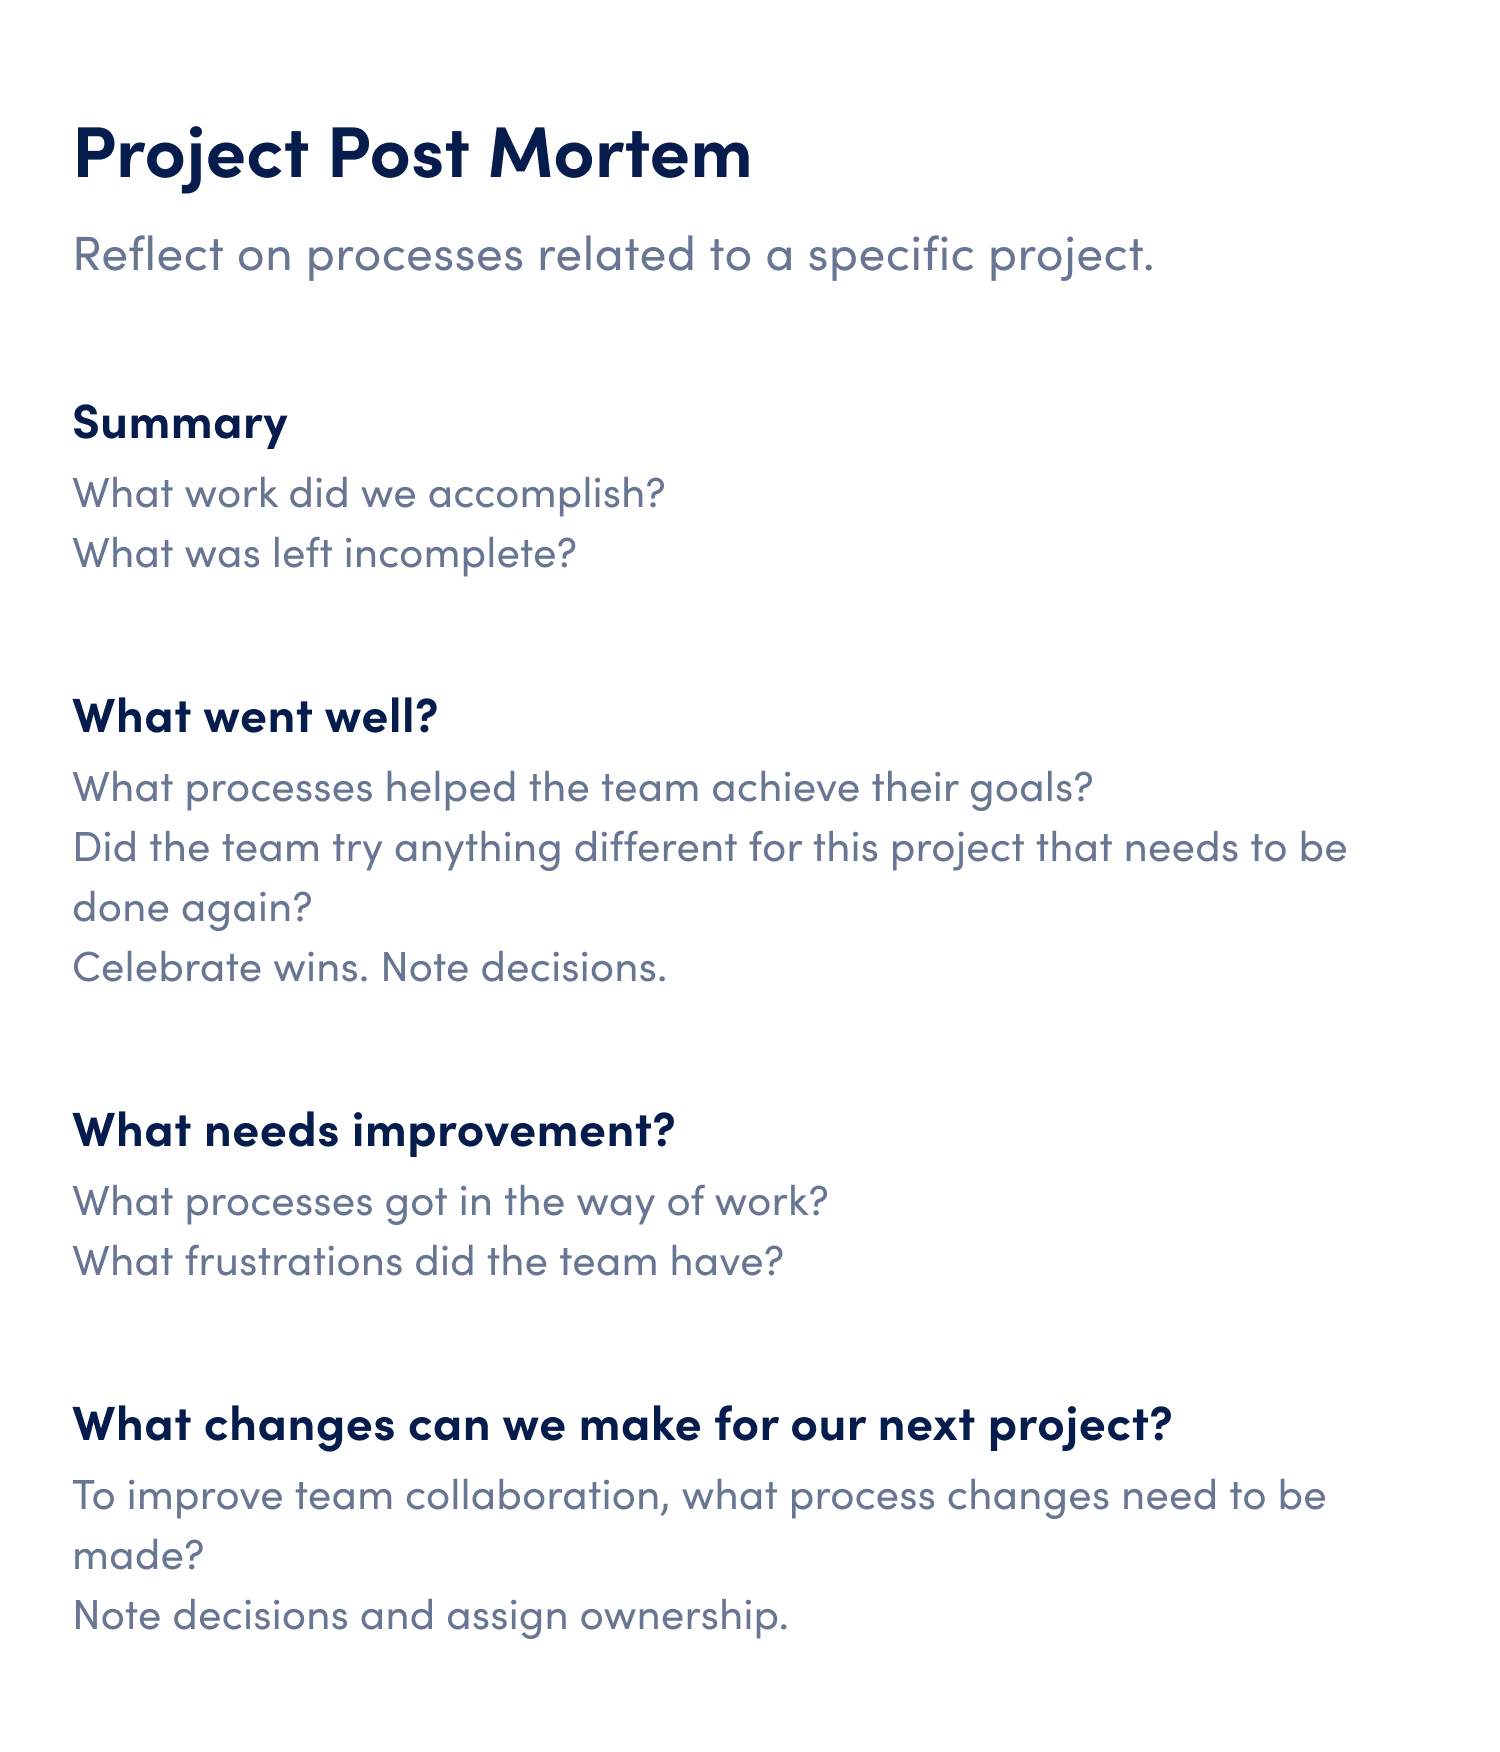 project post mortem meeting agenda template